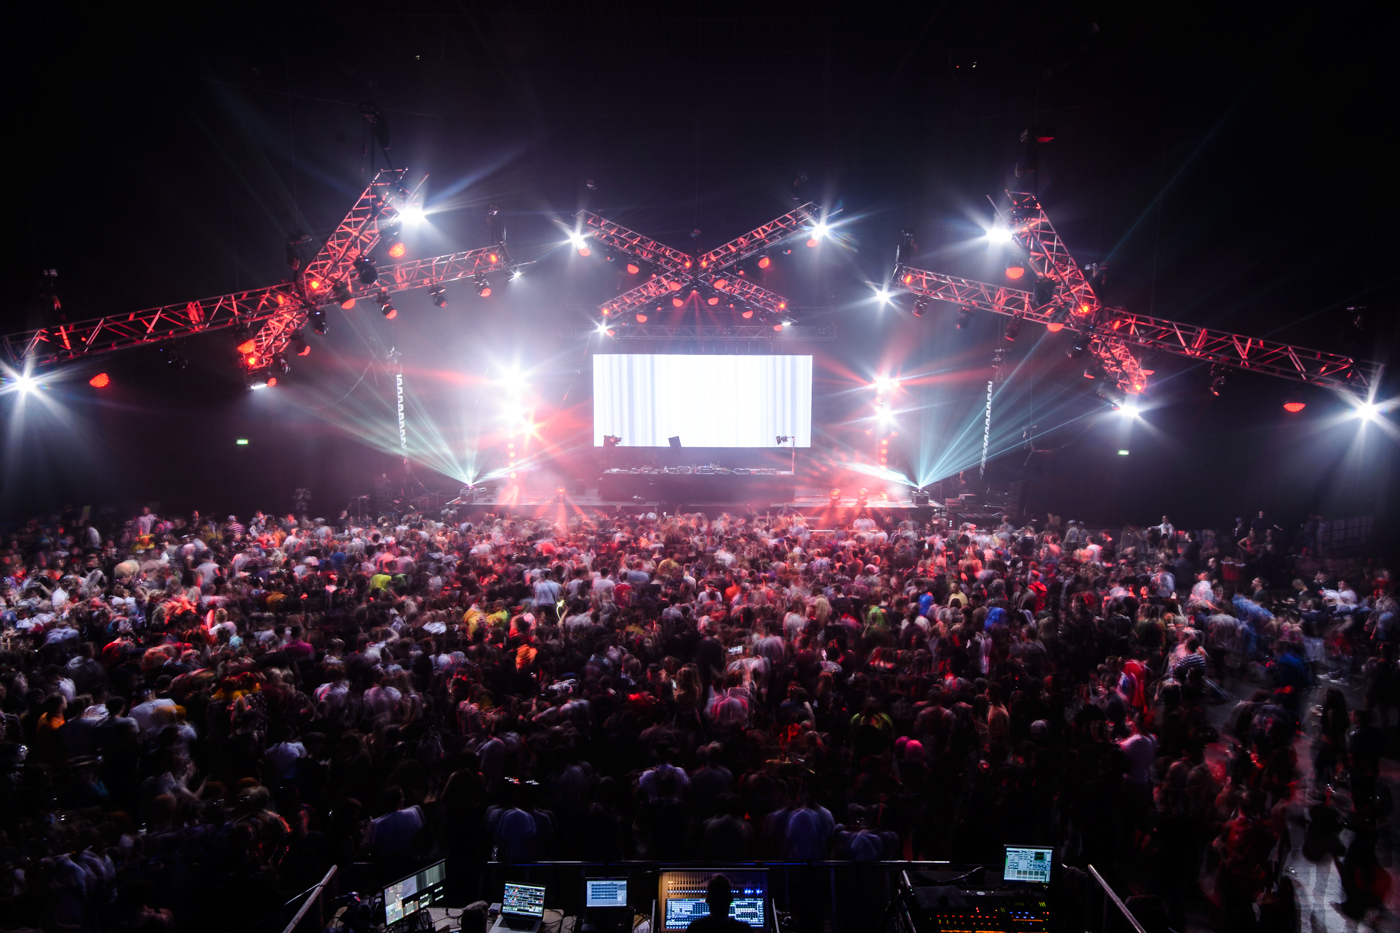 winterparty-at-3arena-dublin-30-10-2016-by-sean-smyth-46-of-53